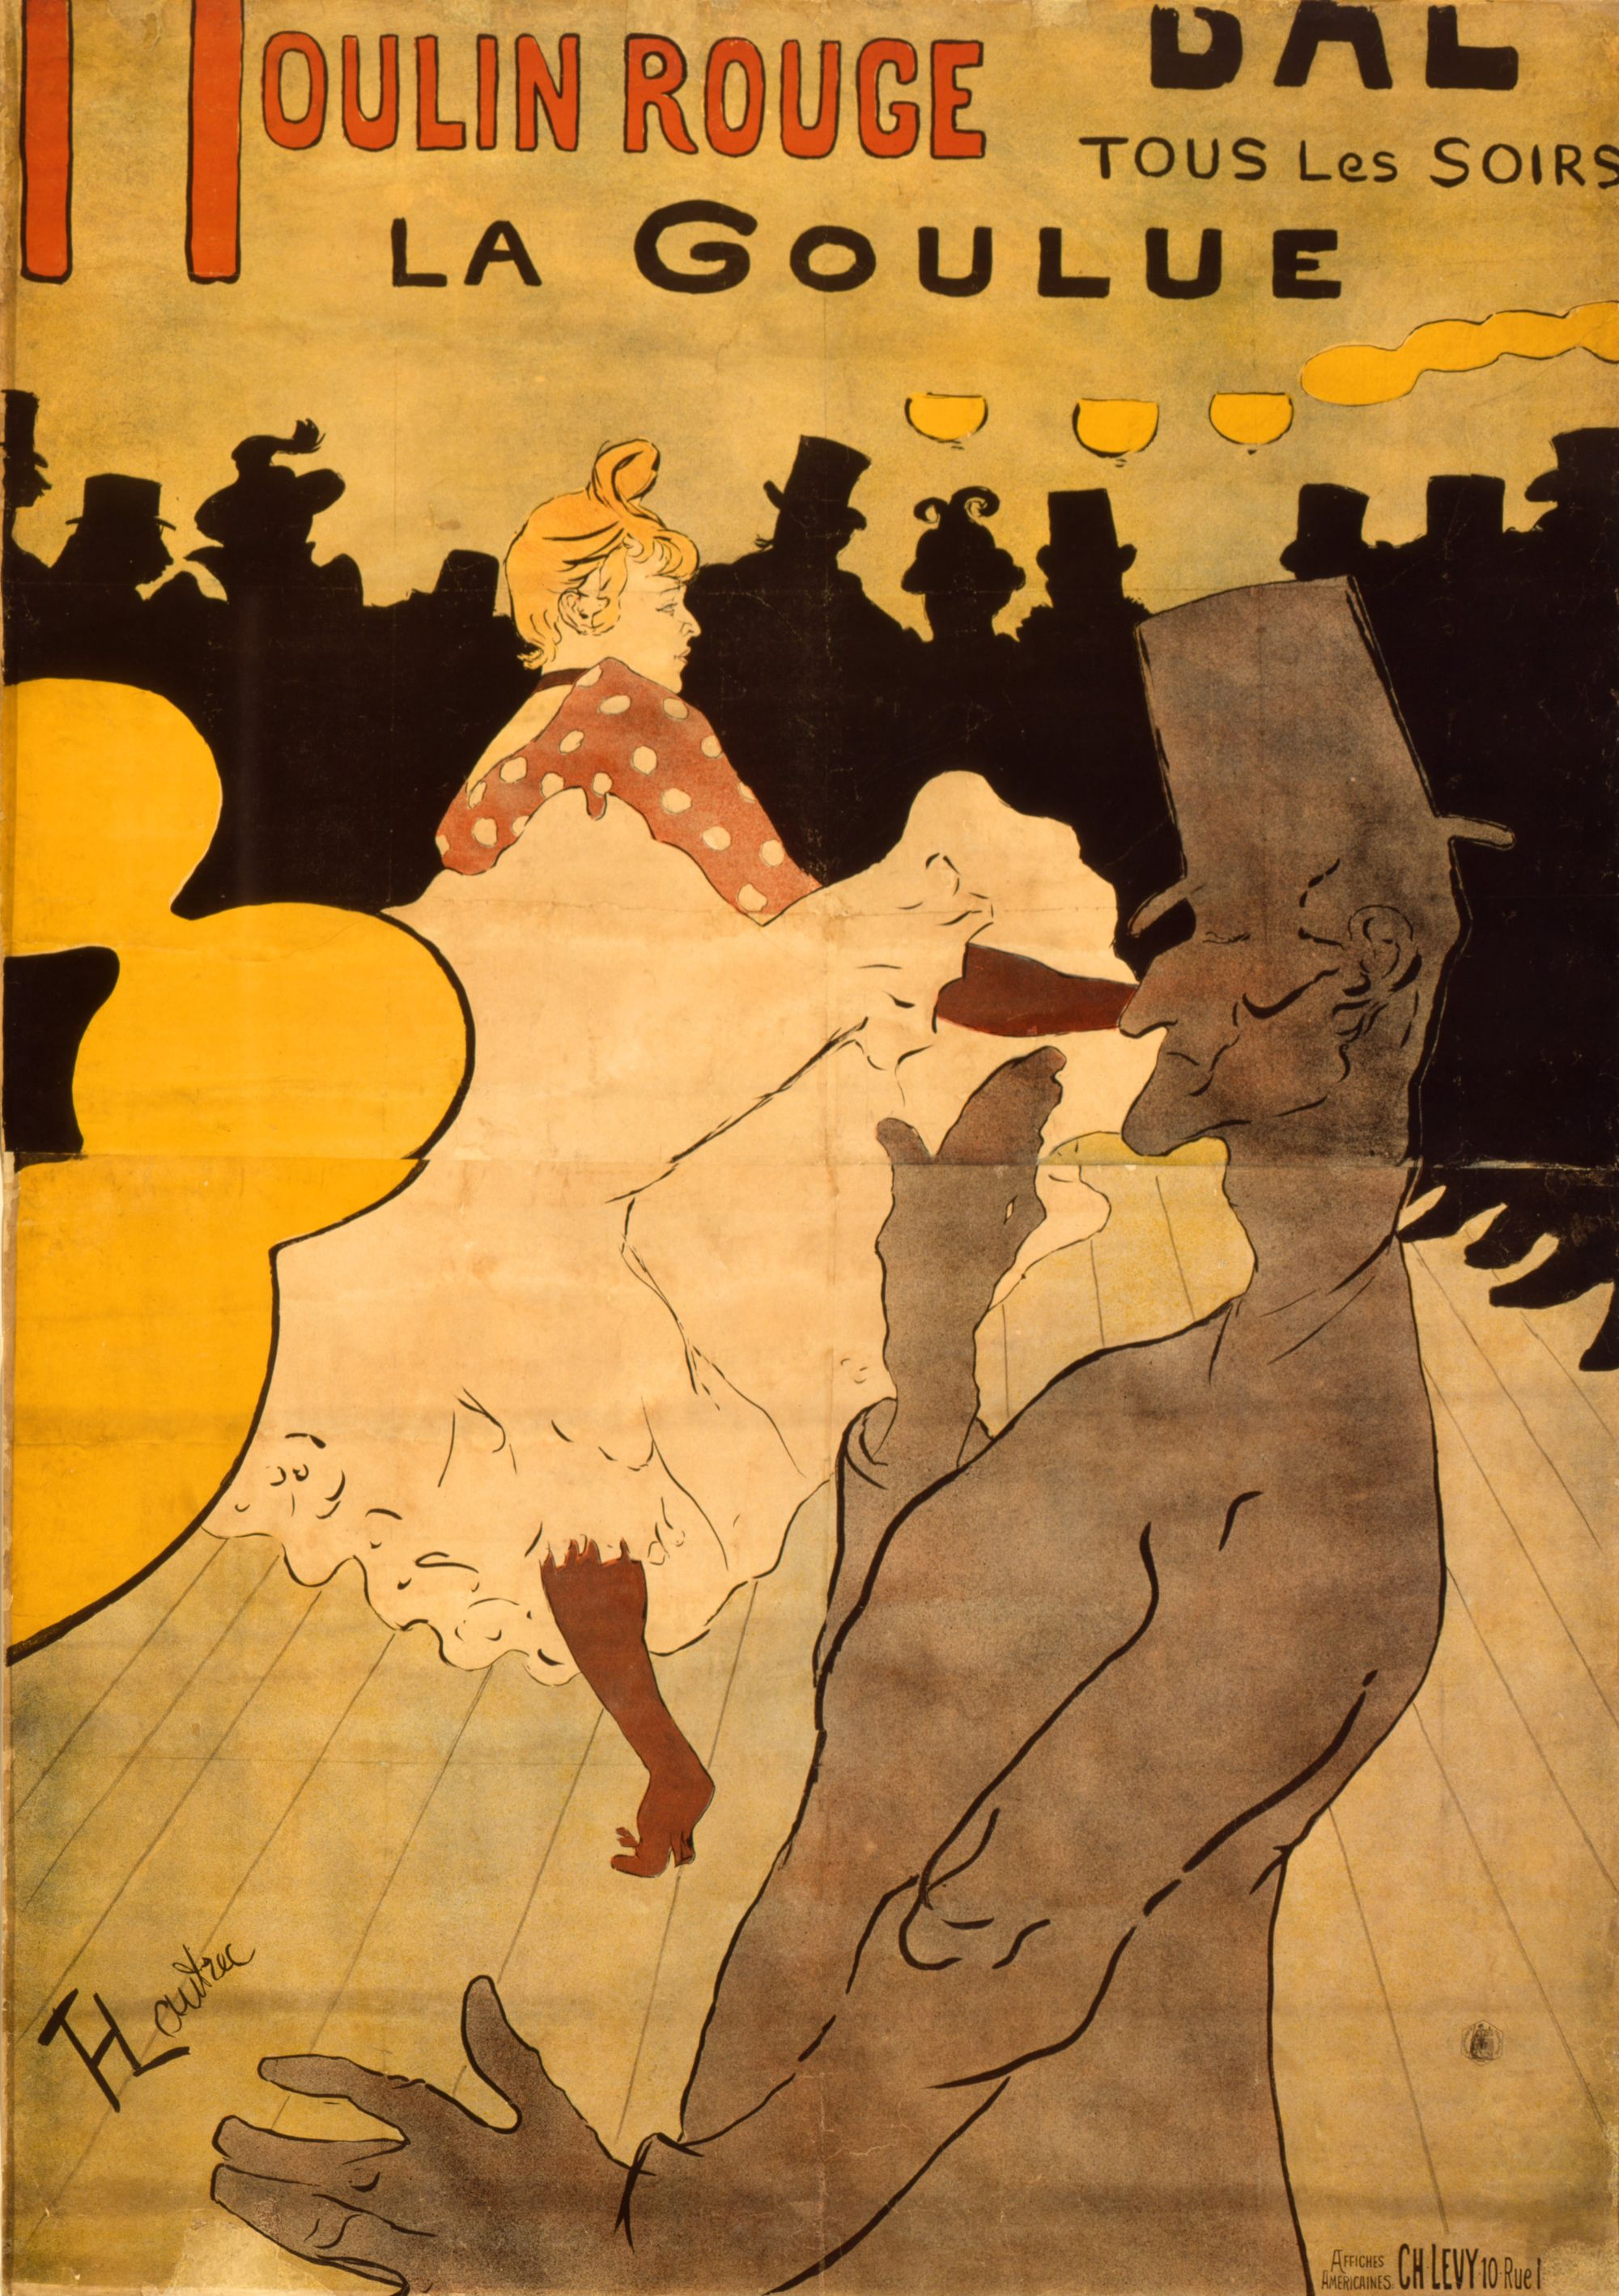 Henri de Toulouse-Lautrec: Moulin Rouge, La Goulue (1891),